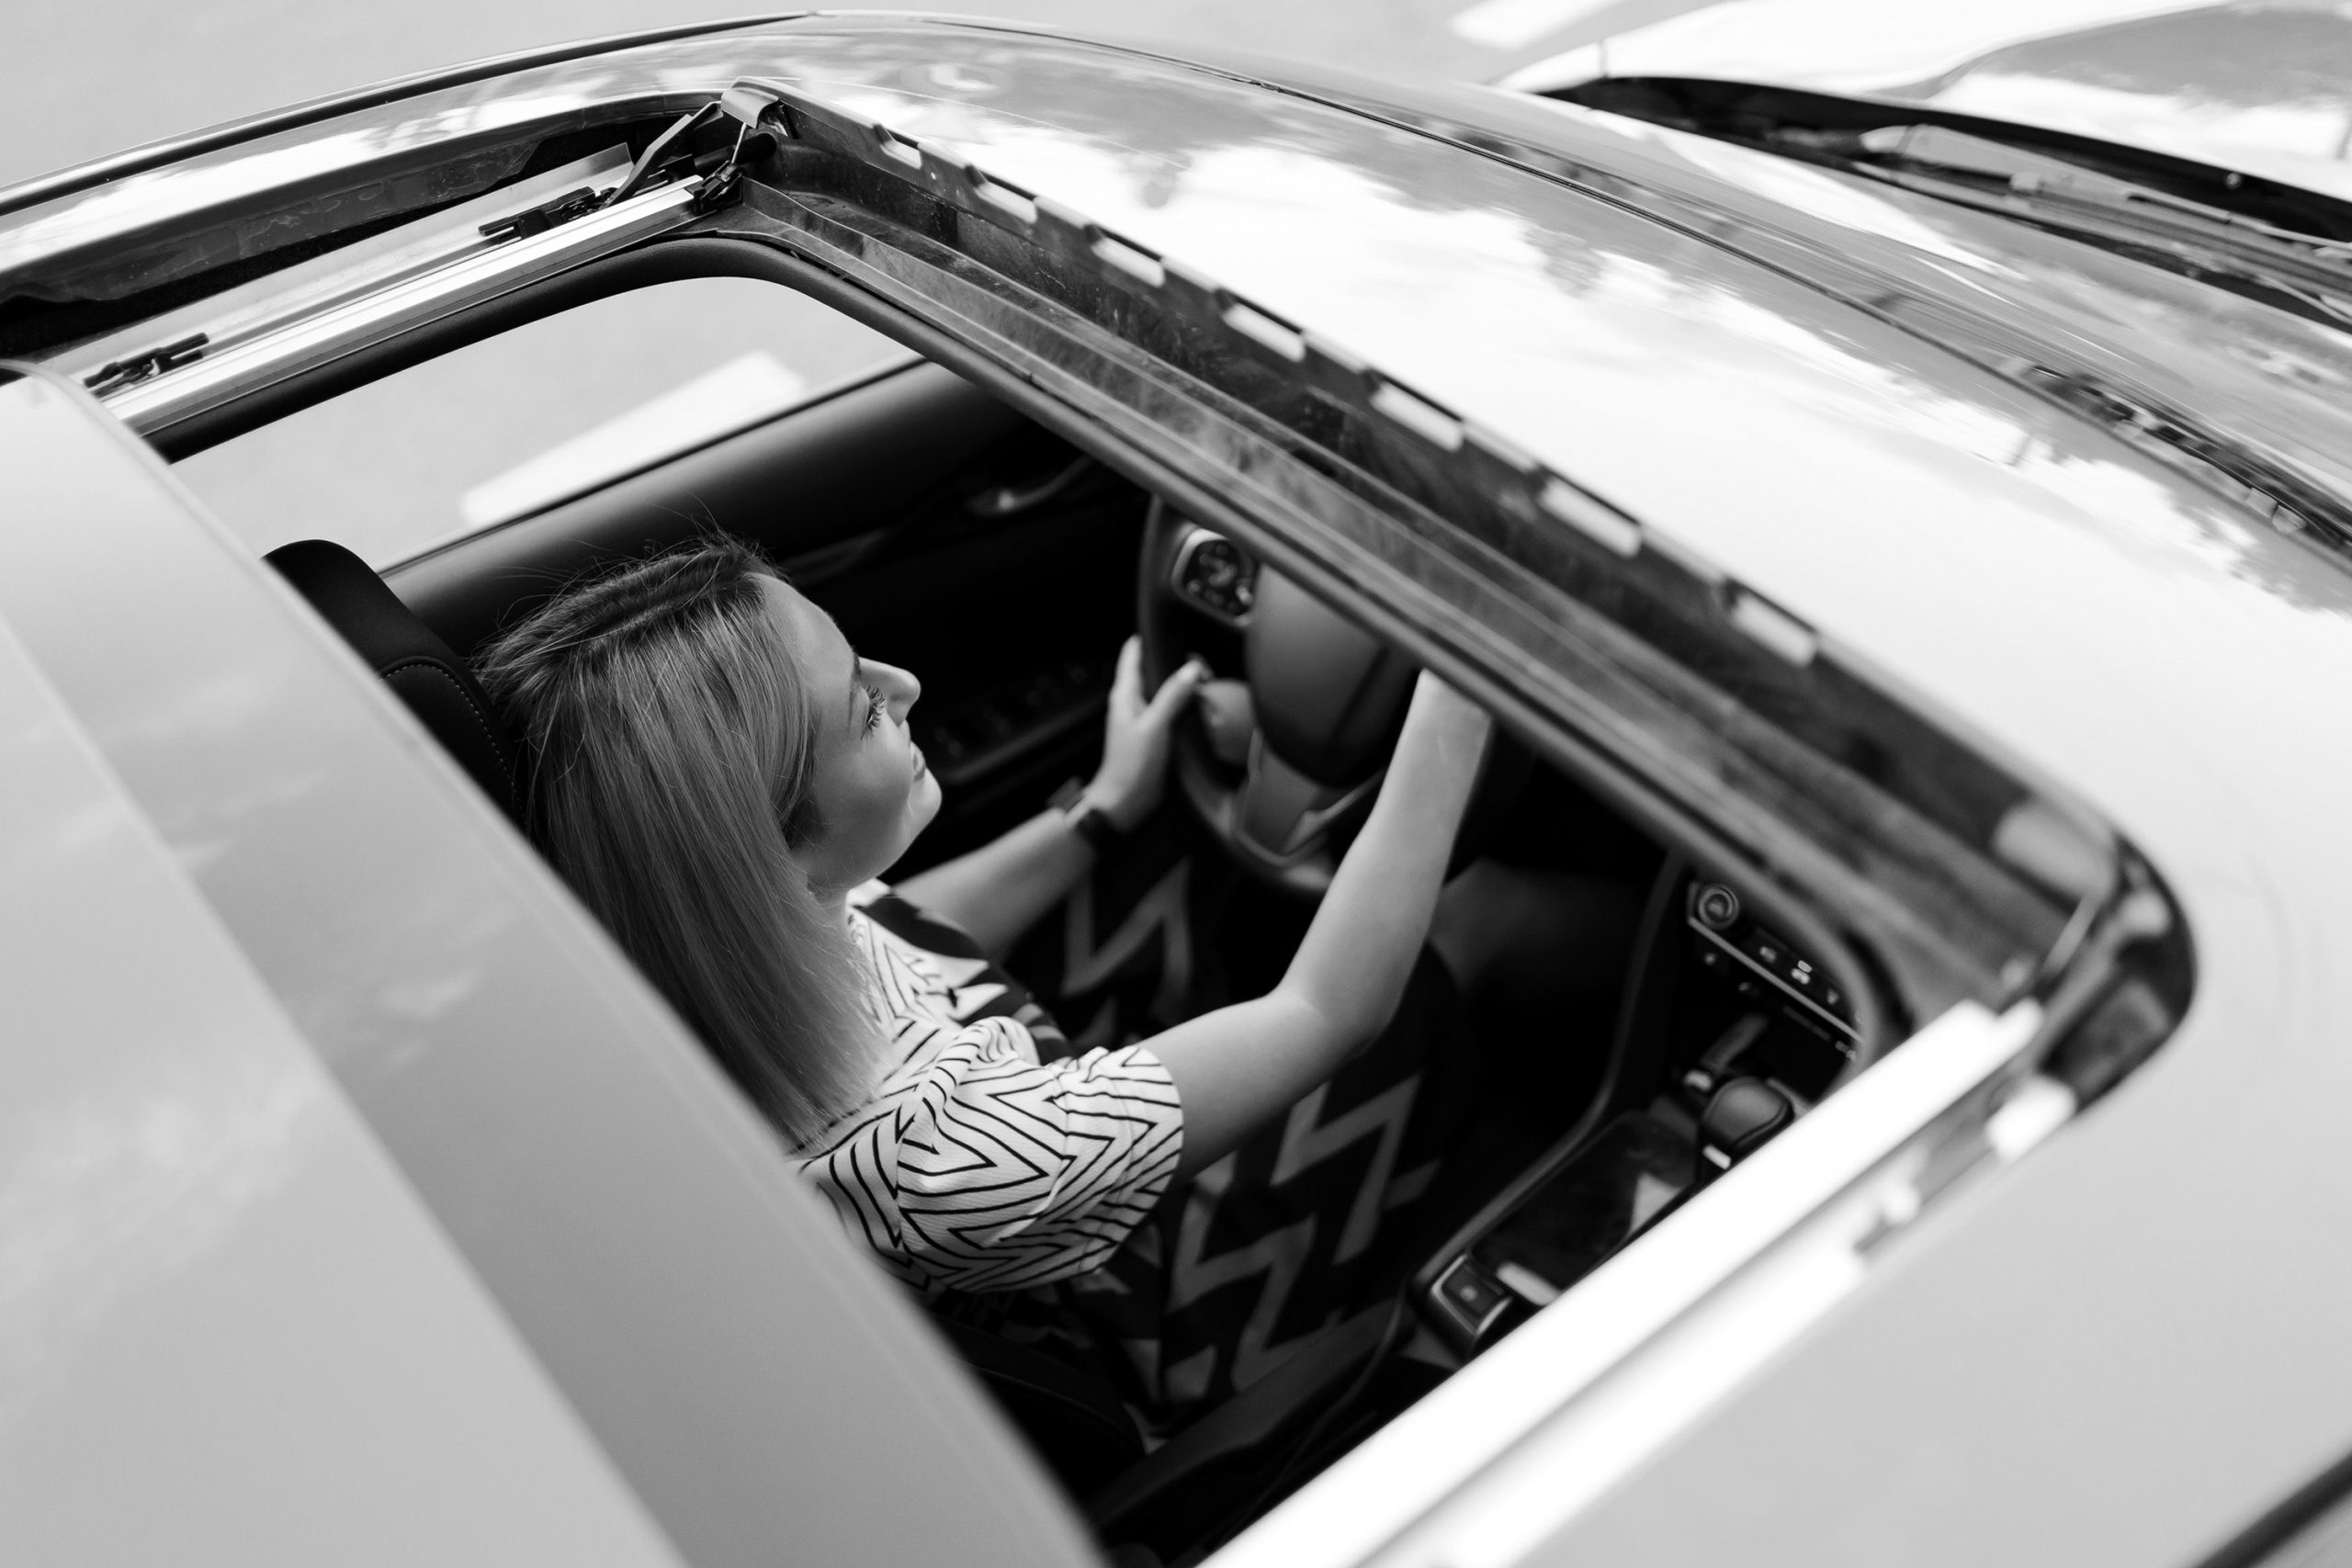 view-of-driving-woman-through-sunroof